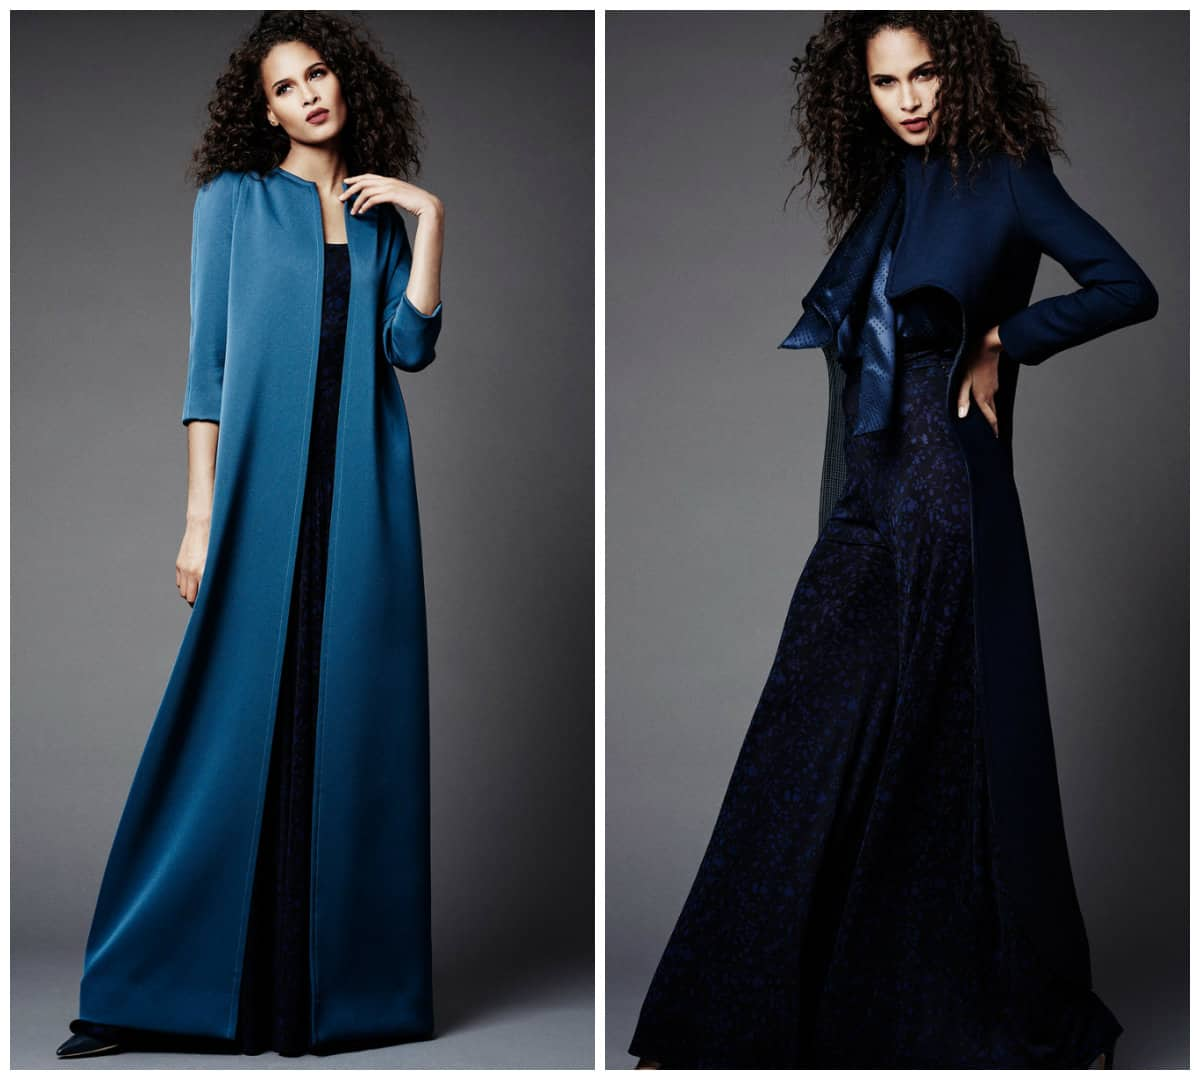 Ladies Gowns: Ladies Coats Fashion Trends Fall Winter 2015-2016